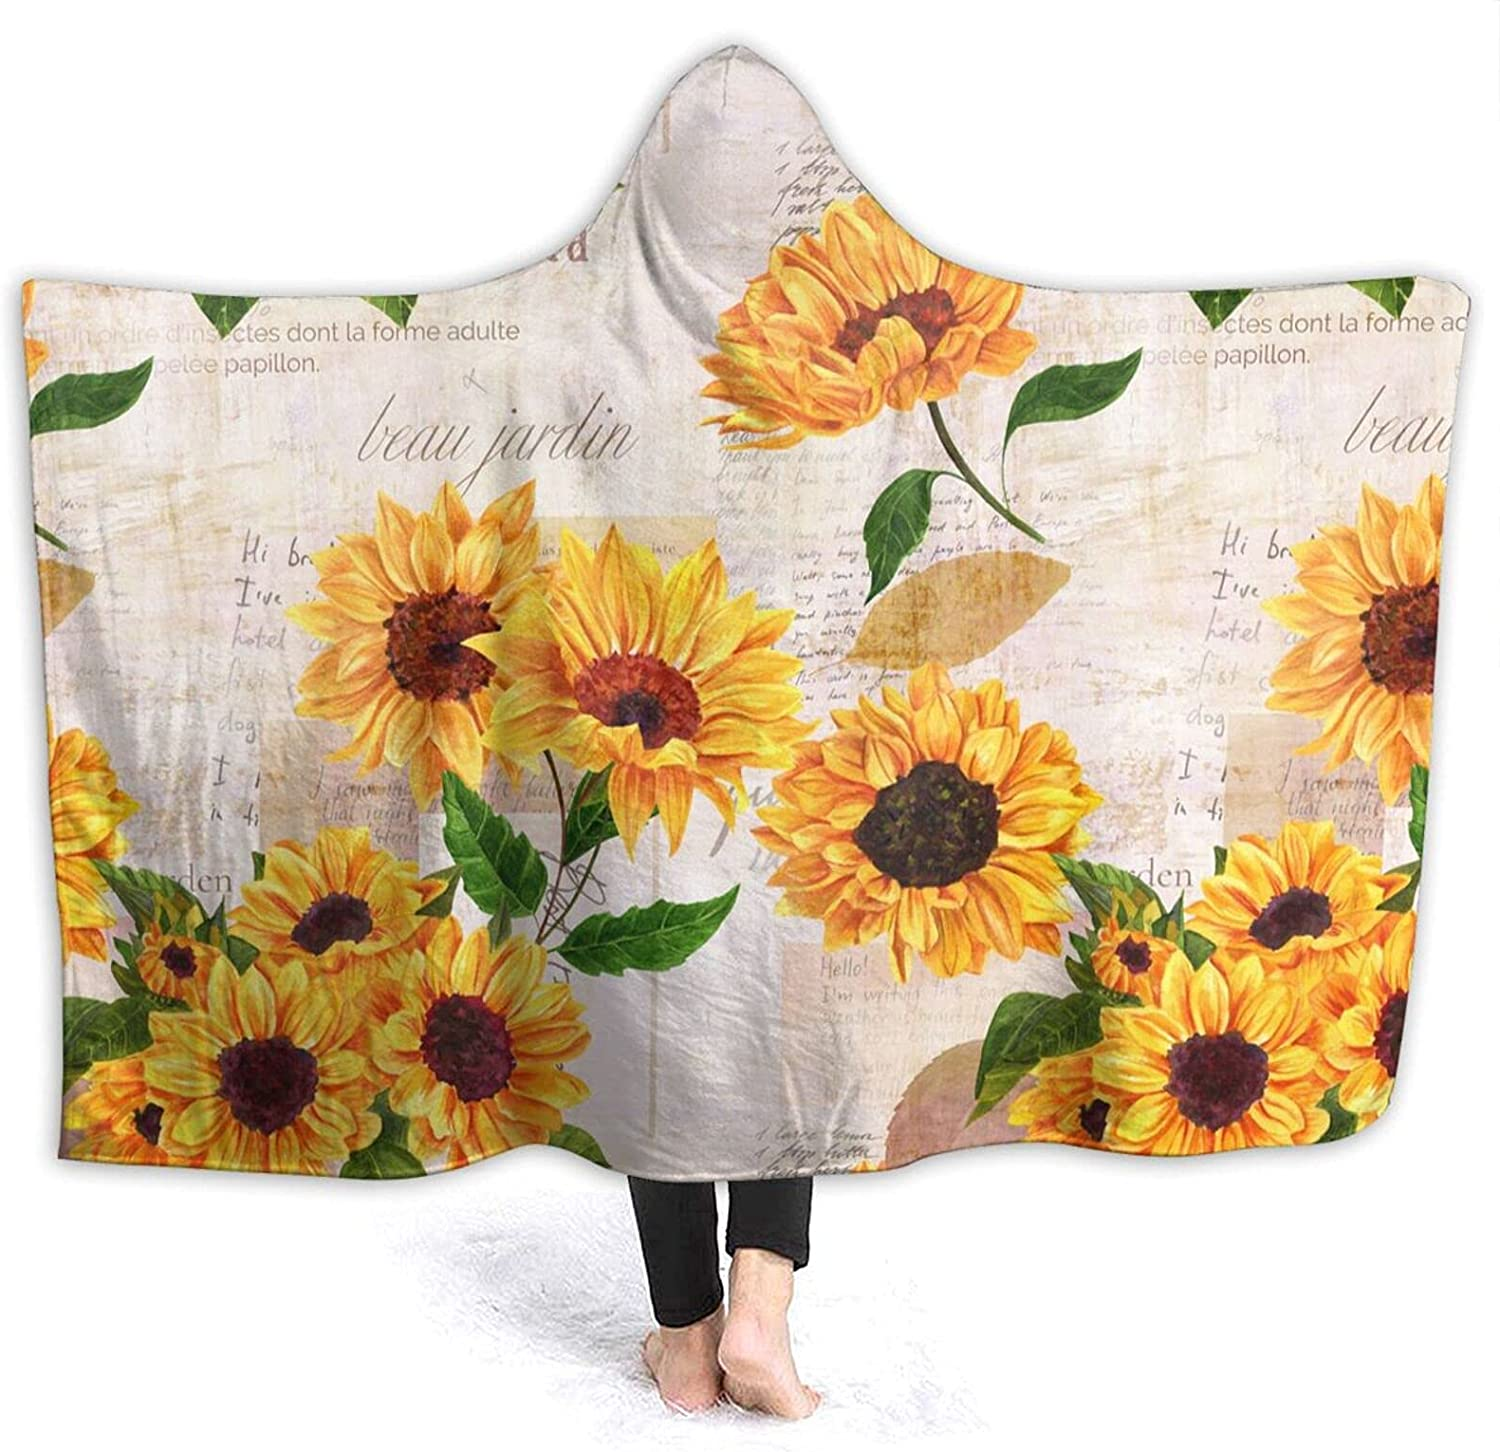 Letter free shipping Ranking TOP18 Sunflower Hooded Blanket 3D Print Weara Sherpa Soft Super